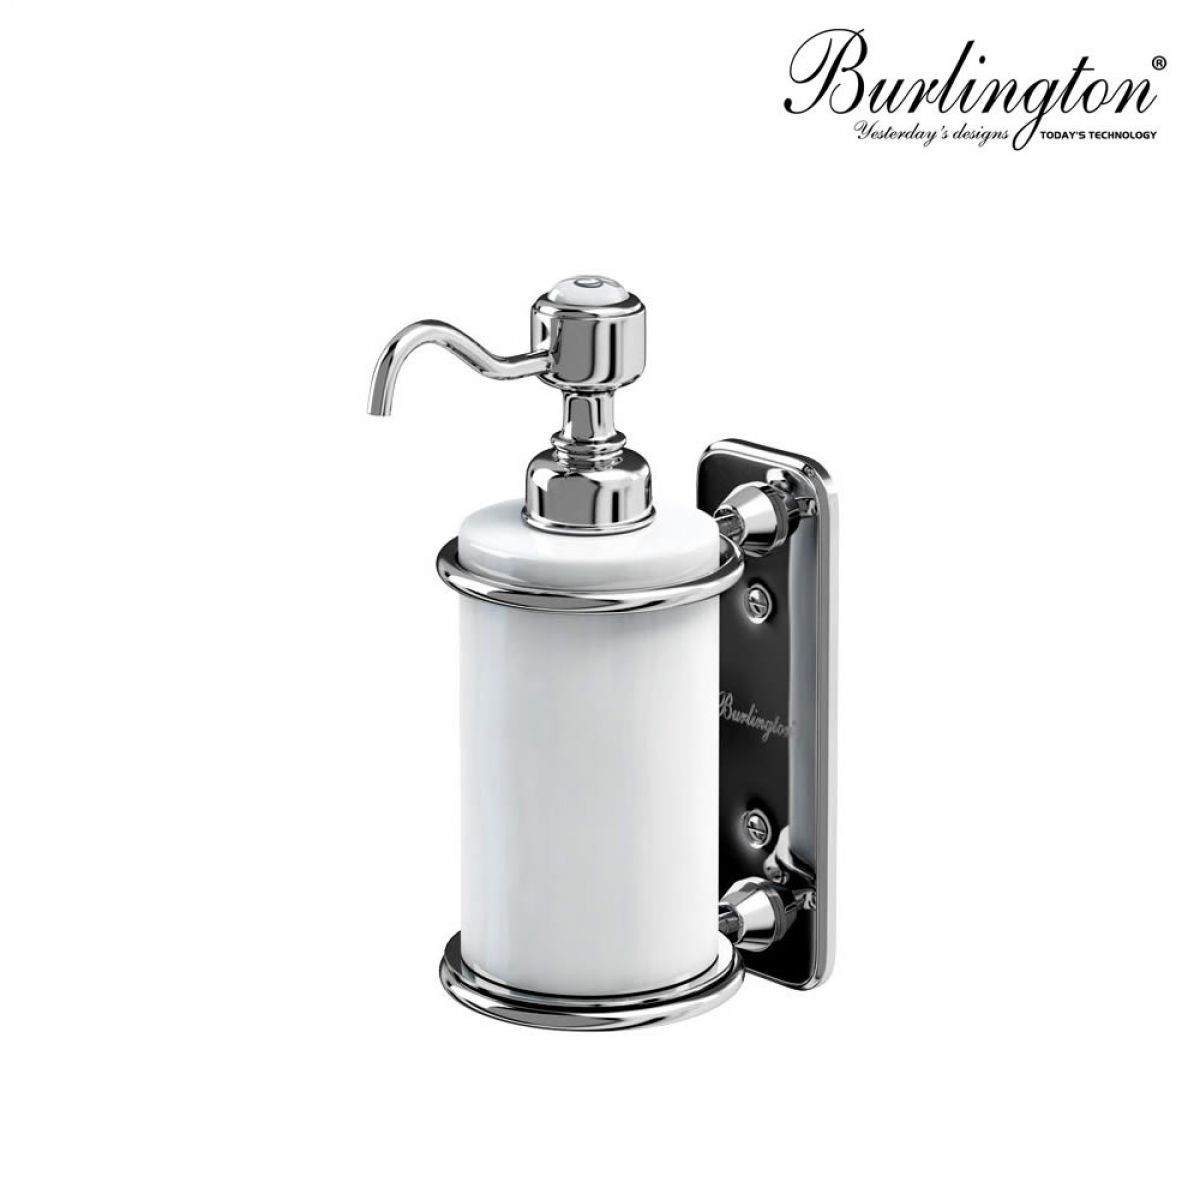 Beau Wall Mounted Liquid Soap Dispenser Bathroom   A New Array Of Flat Panel LCD  And Plasma Tv Common Wall Mount Options Have Bee